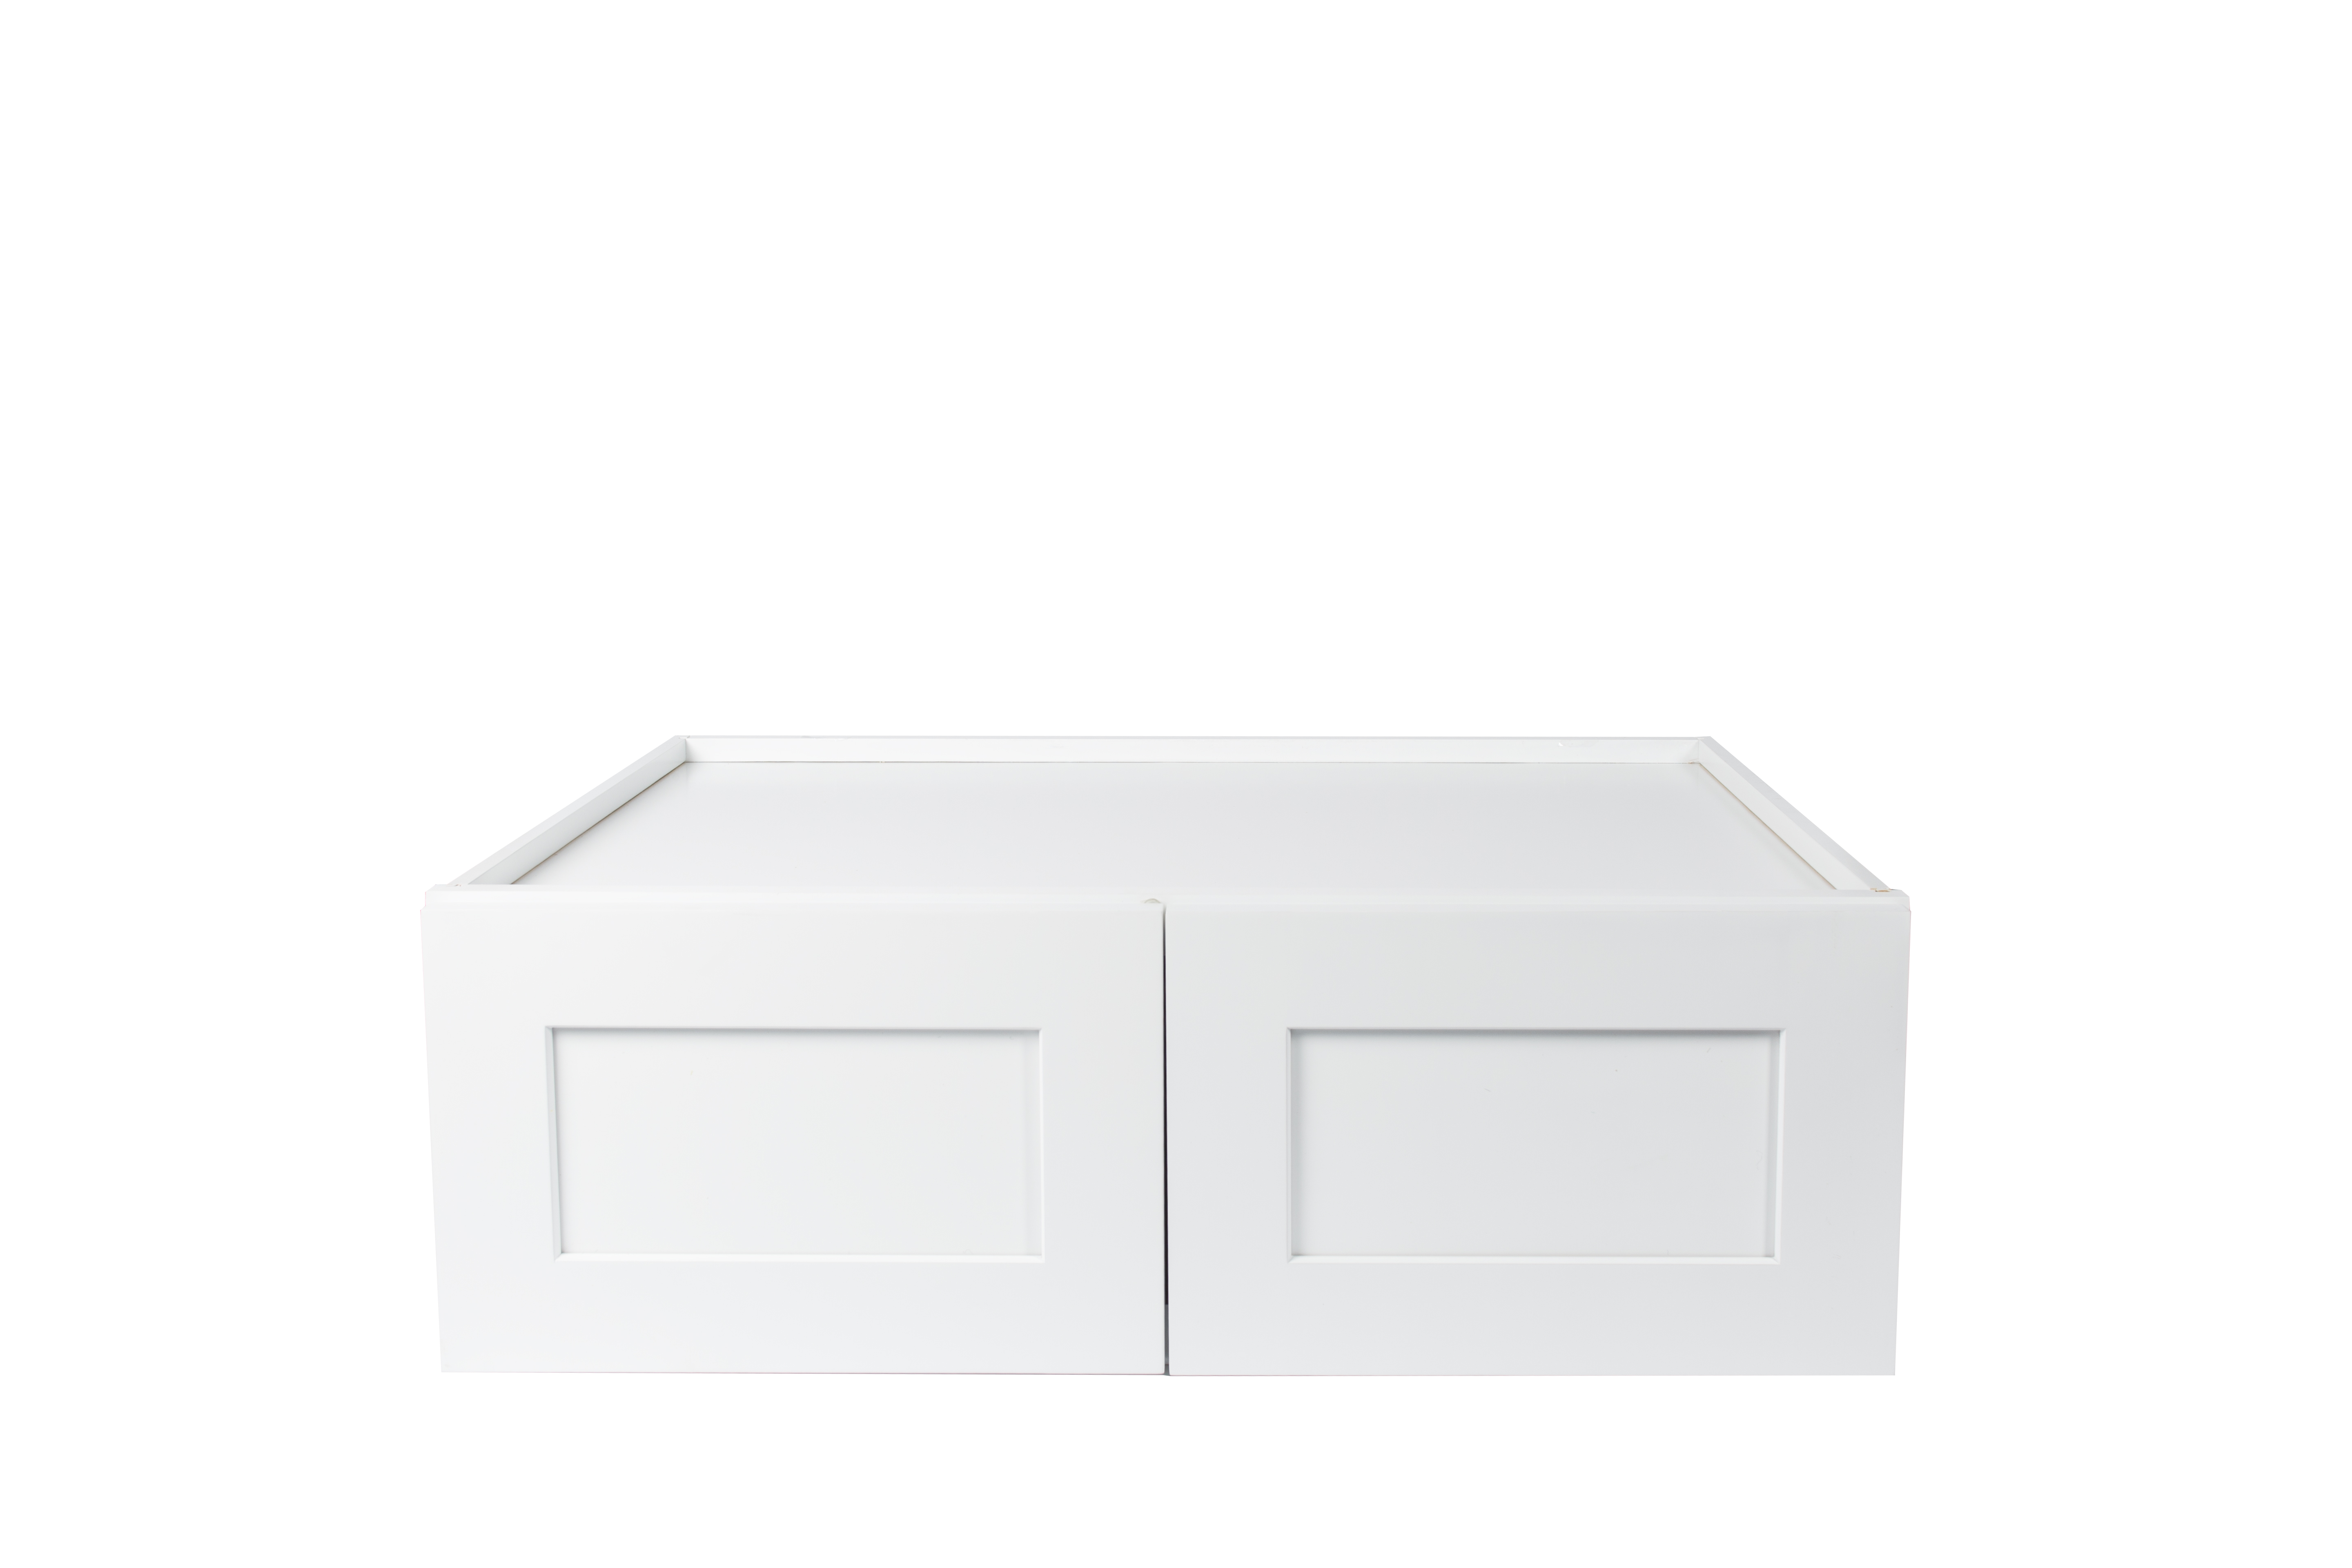 Ready to Assemble 36x24x12 in. High Double Door with 1 Adjustable Shelf Wall Cabinet in Shaker White